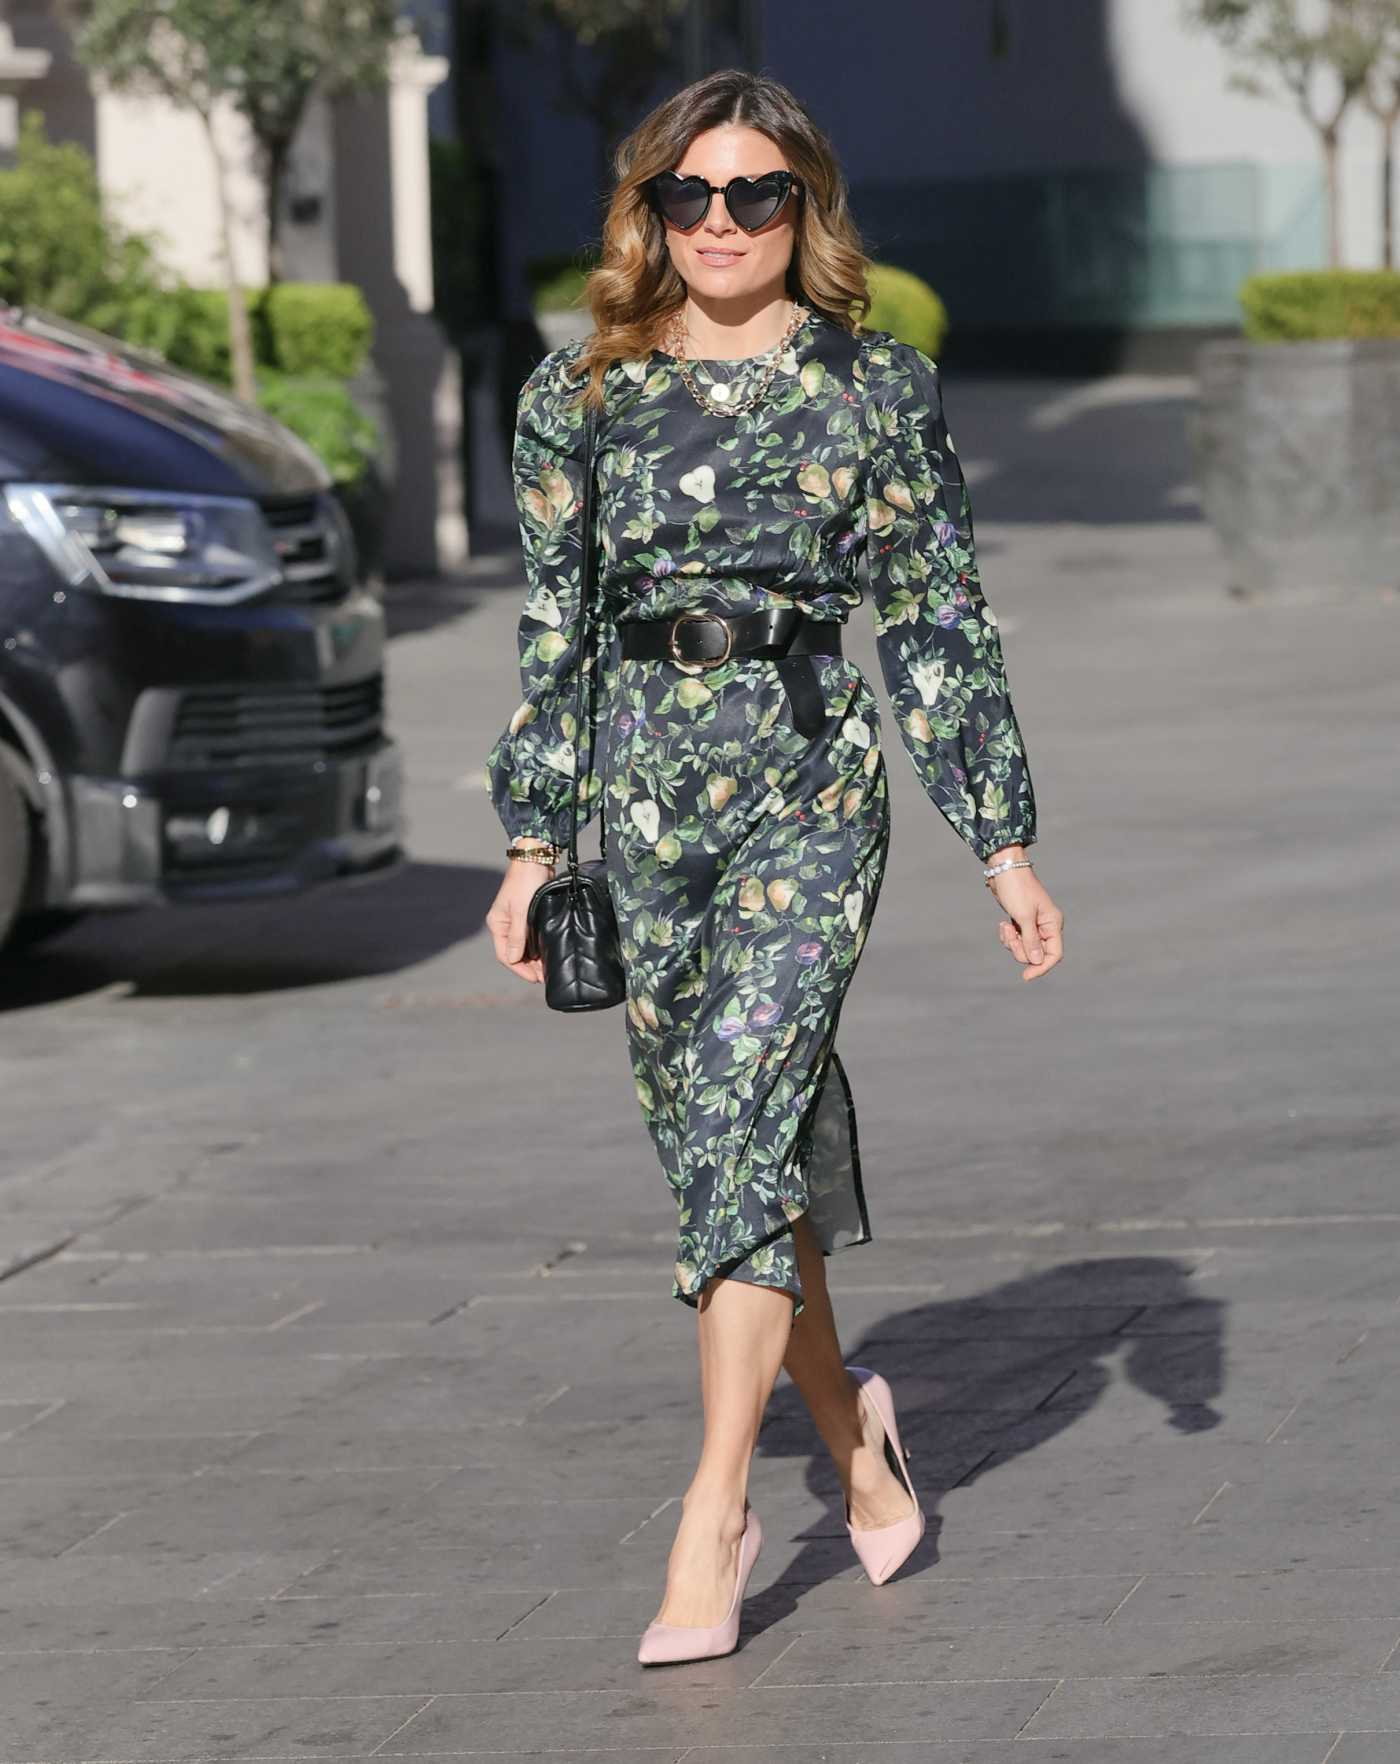 Zoe Hardman in a Green Floral Summer Dress Arrives at the Global Offices in London 04/18/2021